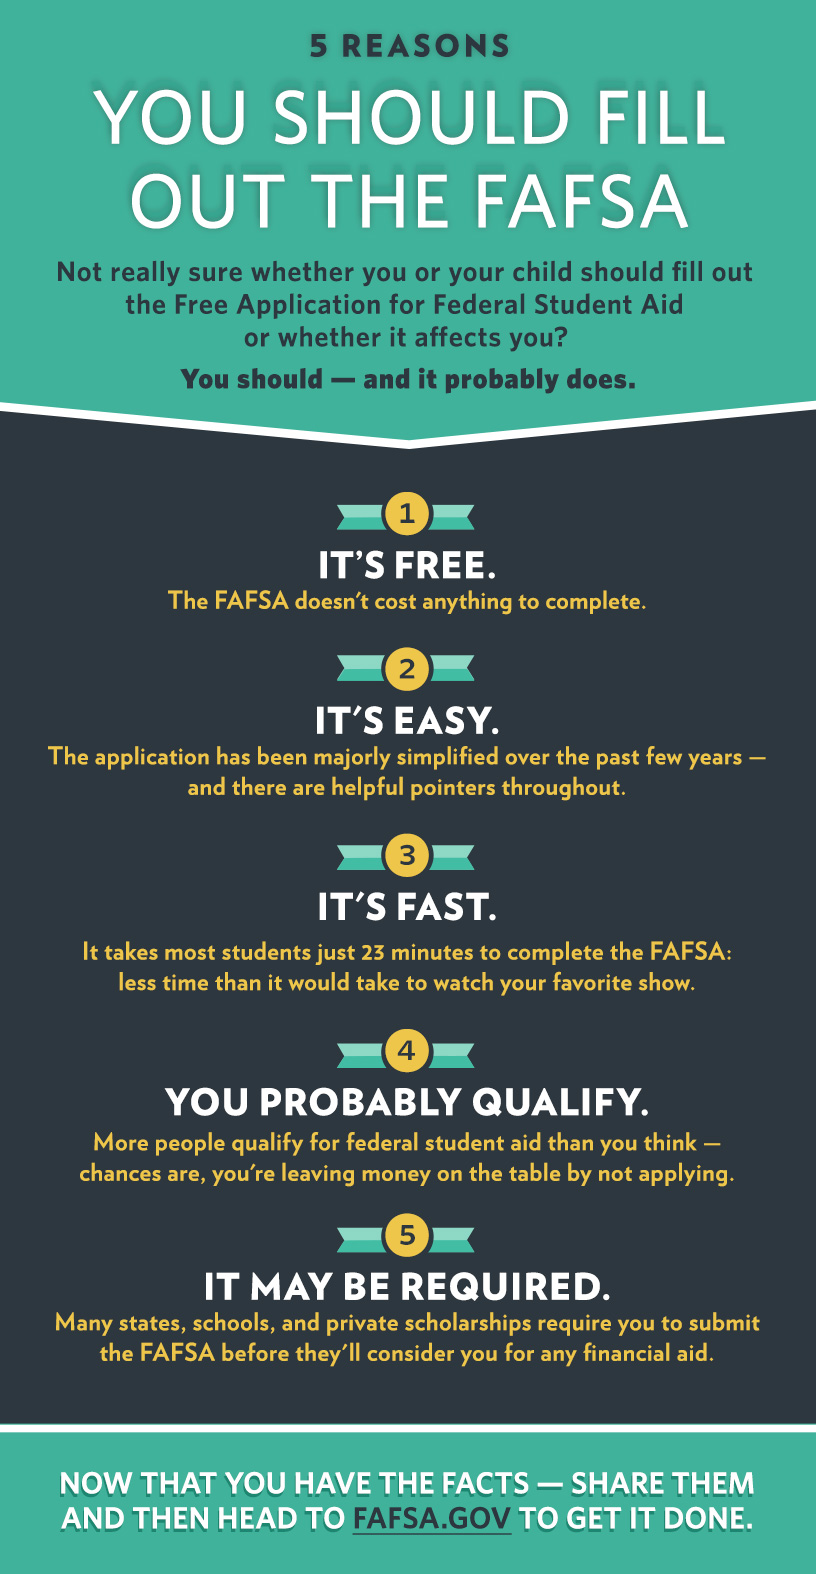 Why You Should Fill Out the FAFSA Graphic